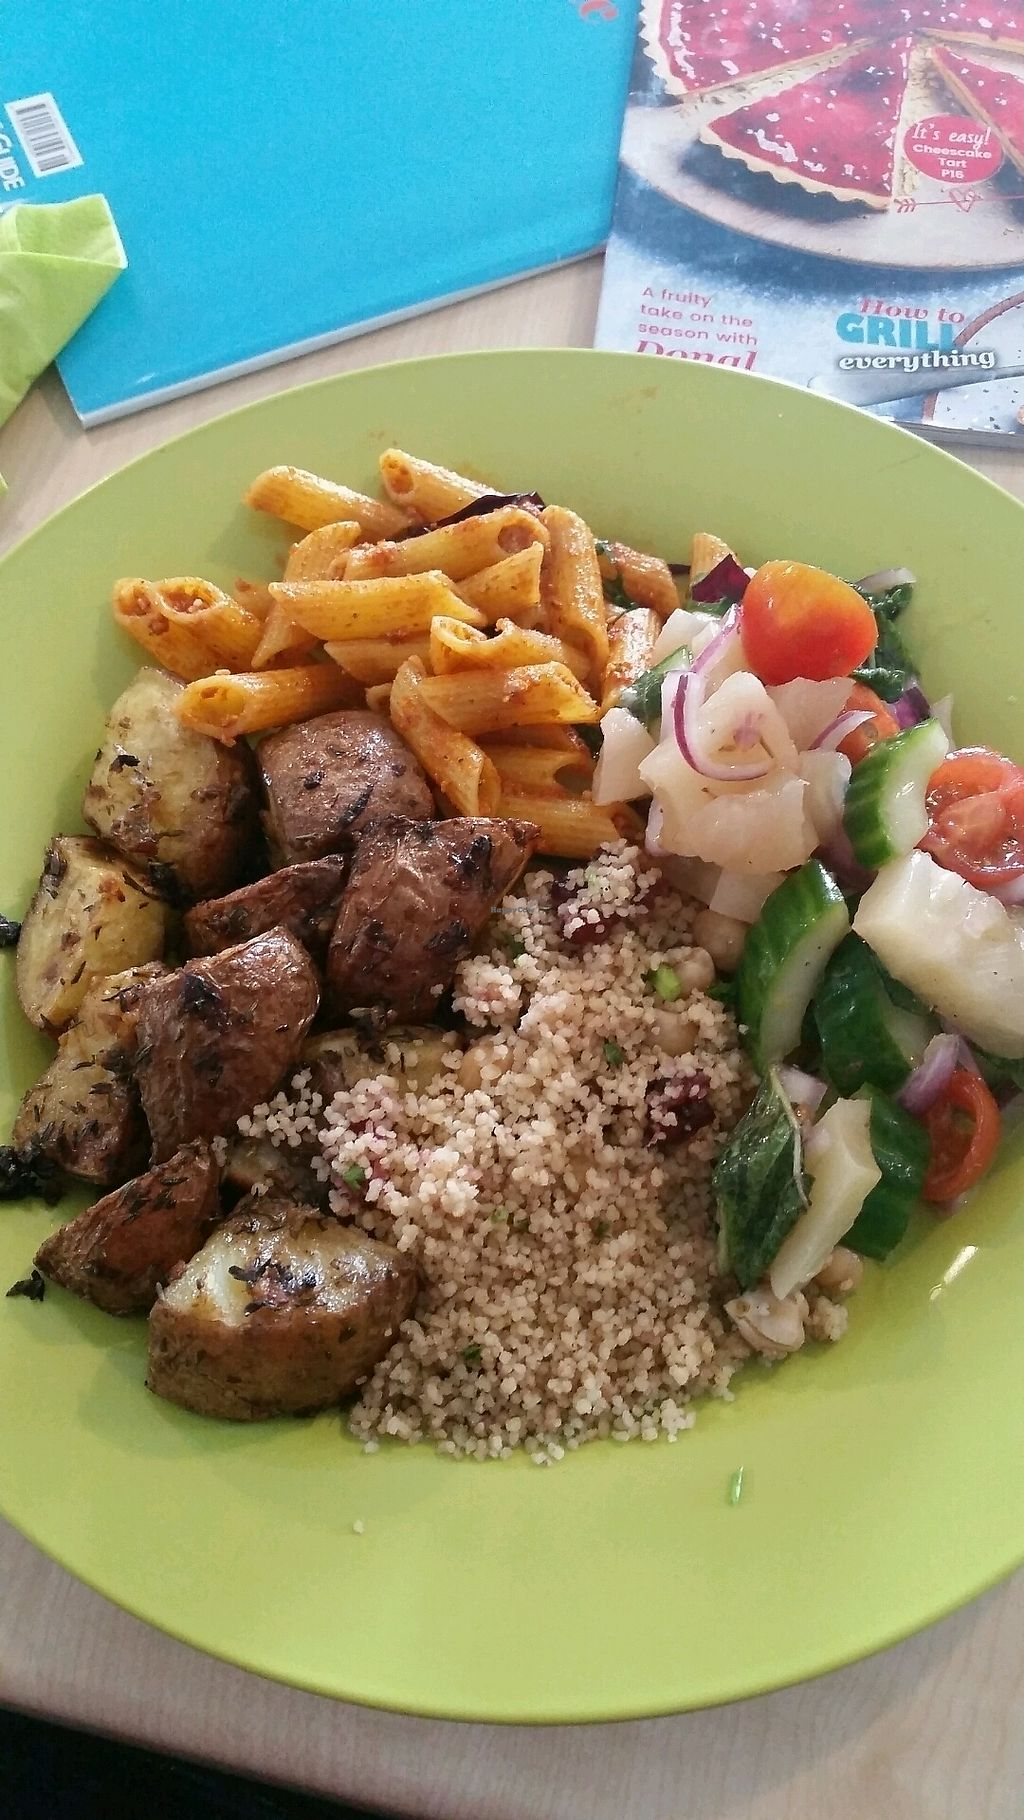 """Photo of Nutrilicious Food Co  by <a href=""""/members/profile/Veronica155"""">Veronica155</a> <br/>cous cous with chickpeas and cranberries and pesto pasta, salsa, roasted potatoes with balsmatic vinegar <br/> April 14, 2018  - <a href='/contact/abuse/image/107177/385733'>Report</a>"""